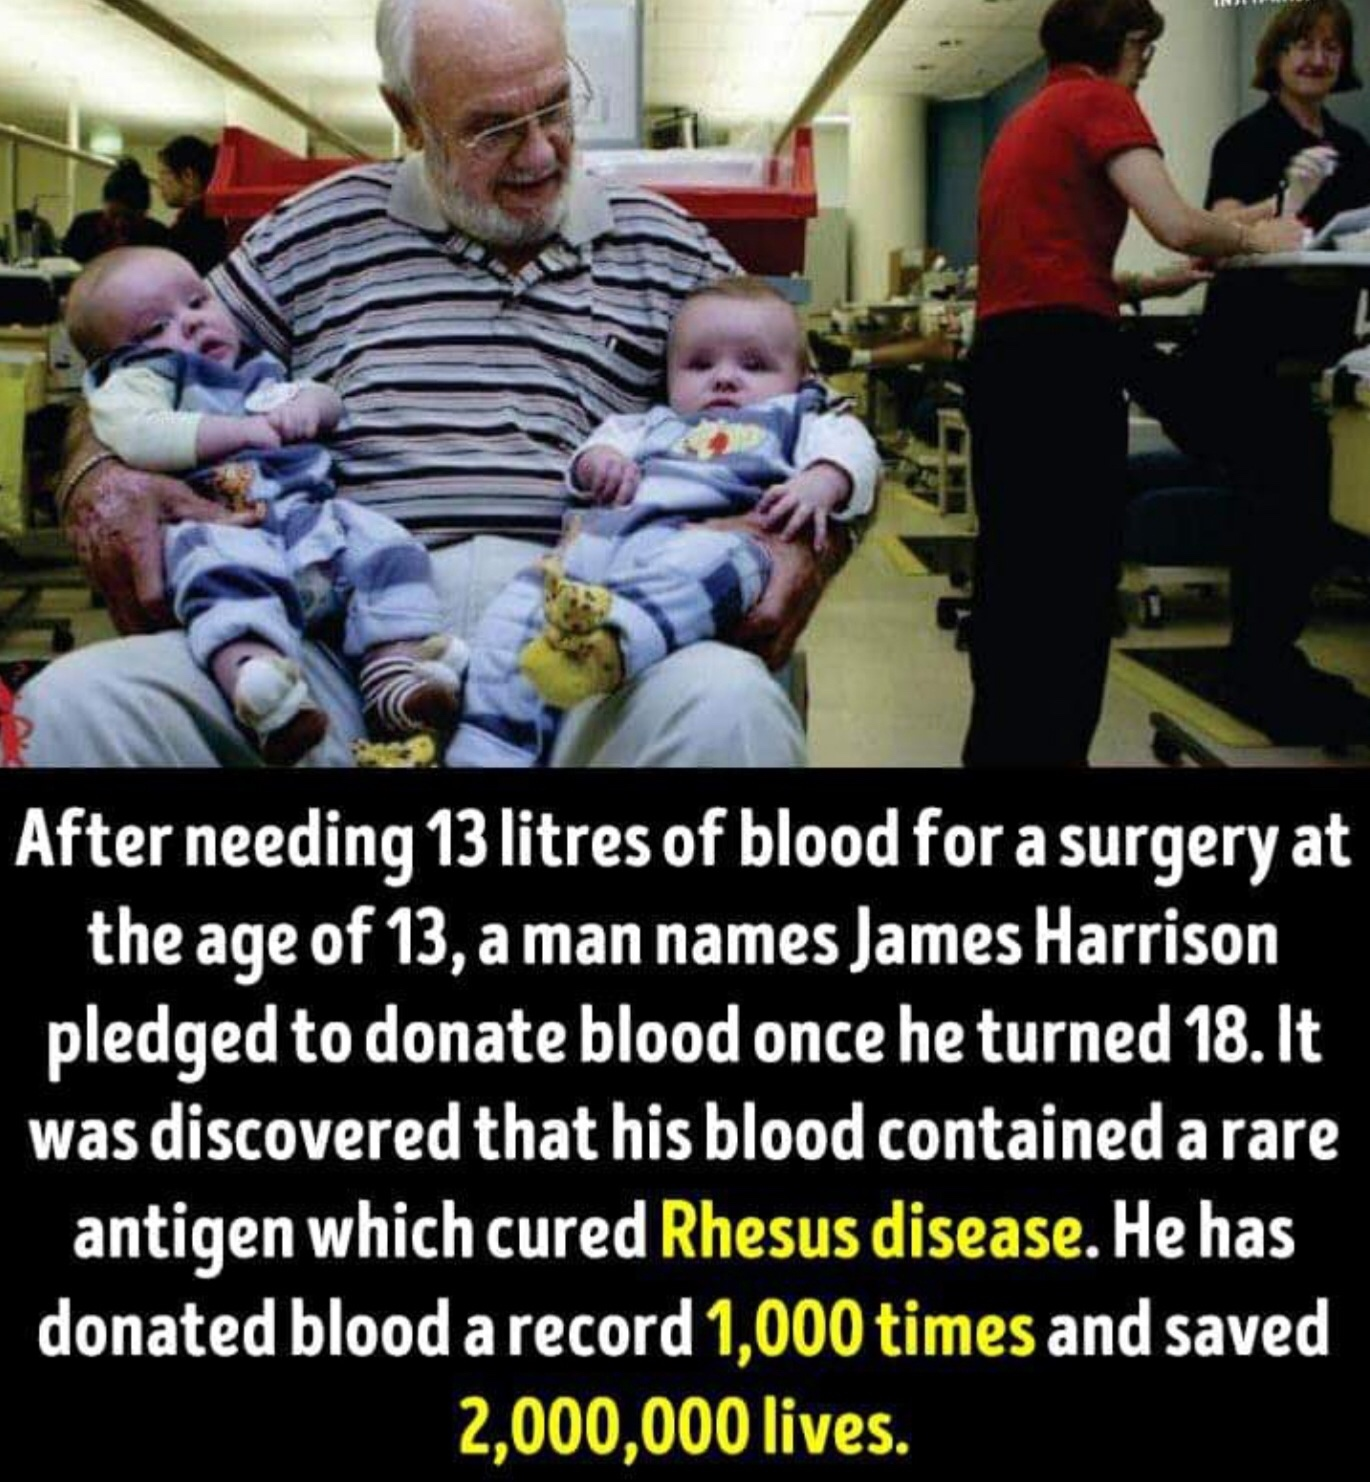 [image] donate blood